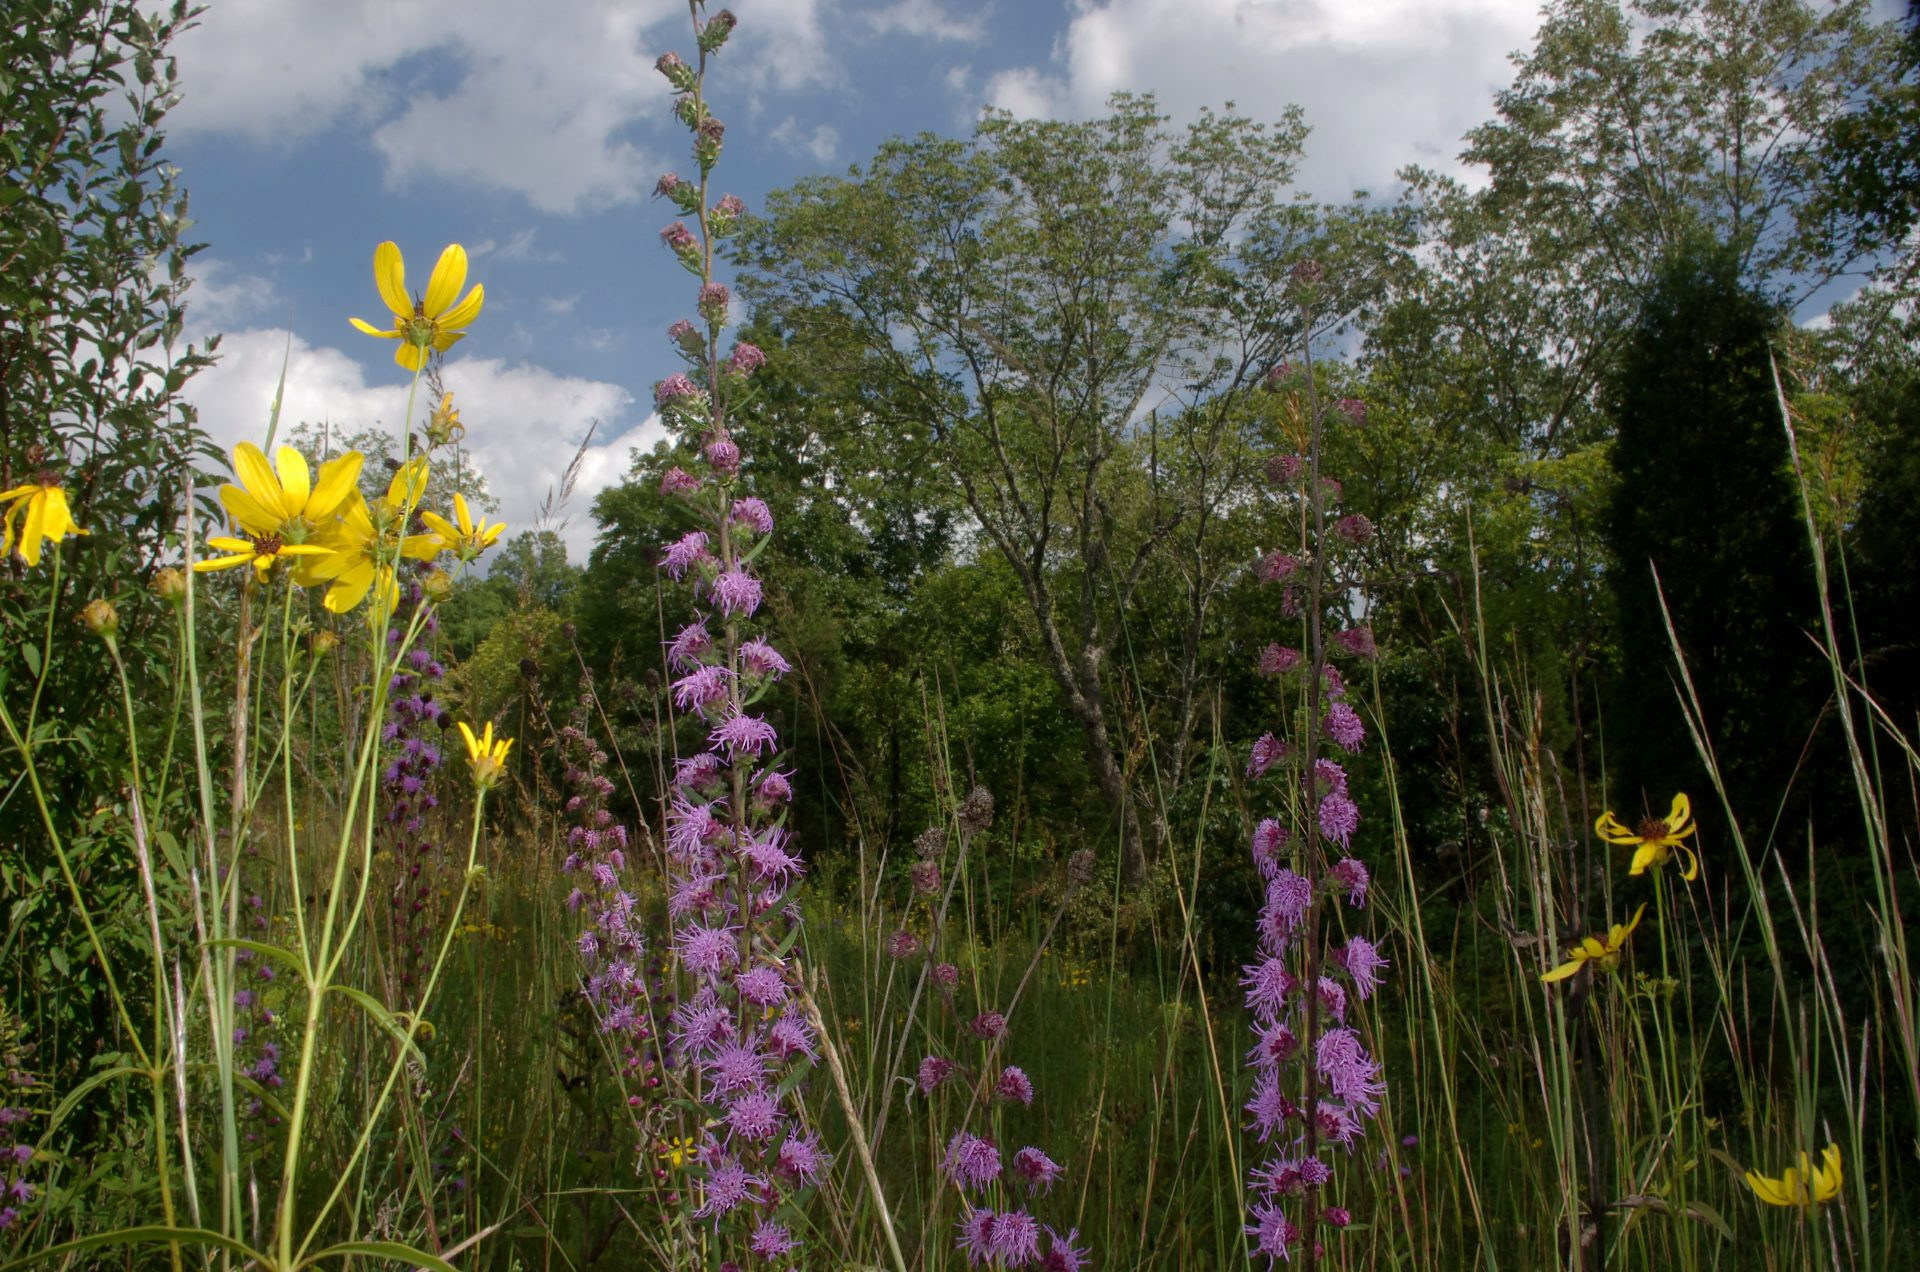 Colorful displays of showy wildflowers make Ka-ma-ma Prairie a treasured spring destination for nature lovers.